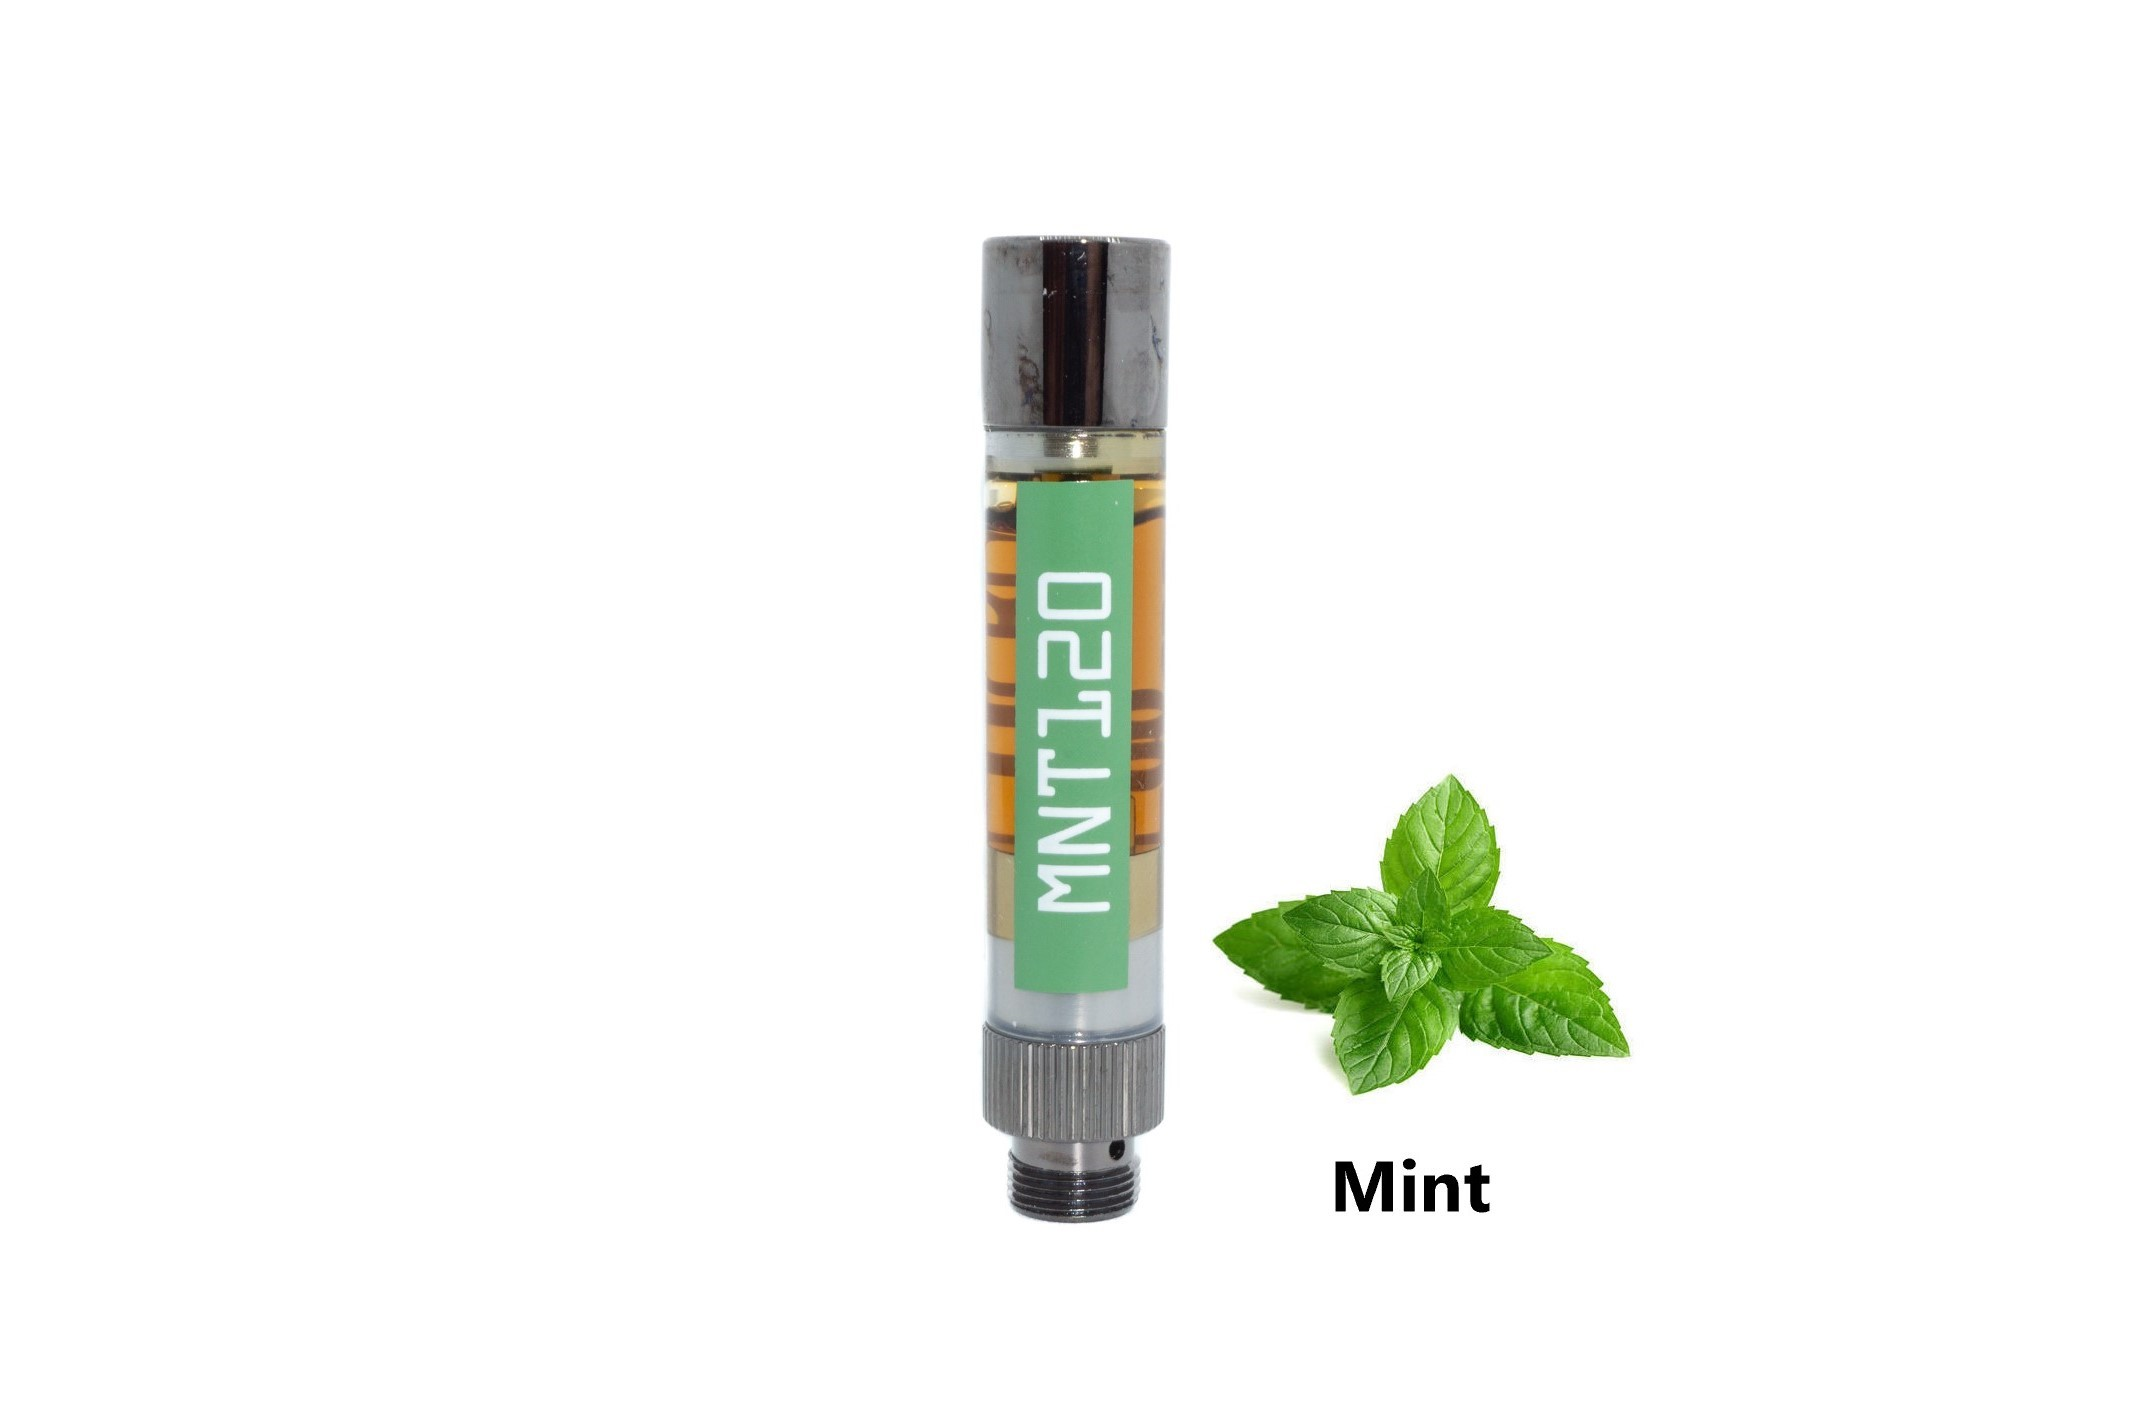 Mint (1:0) CBD Replacement Cartridge by Keyy 01163